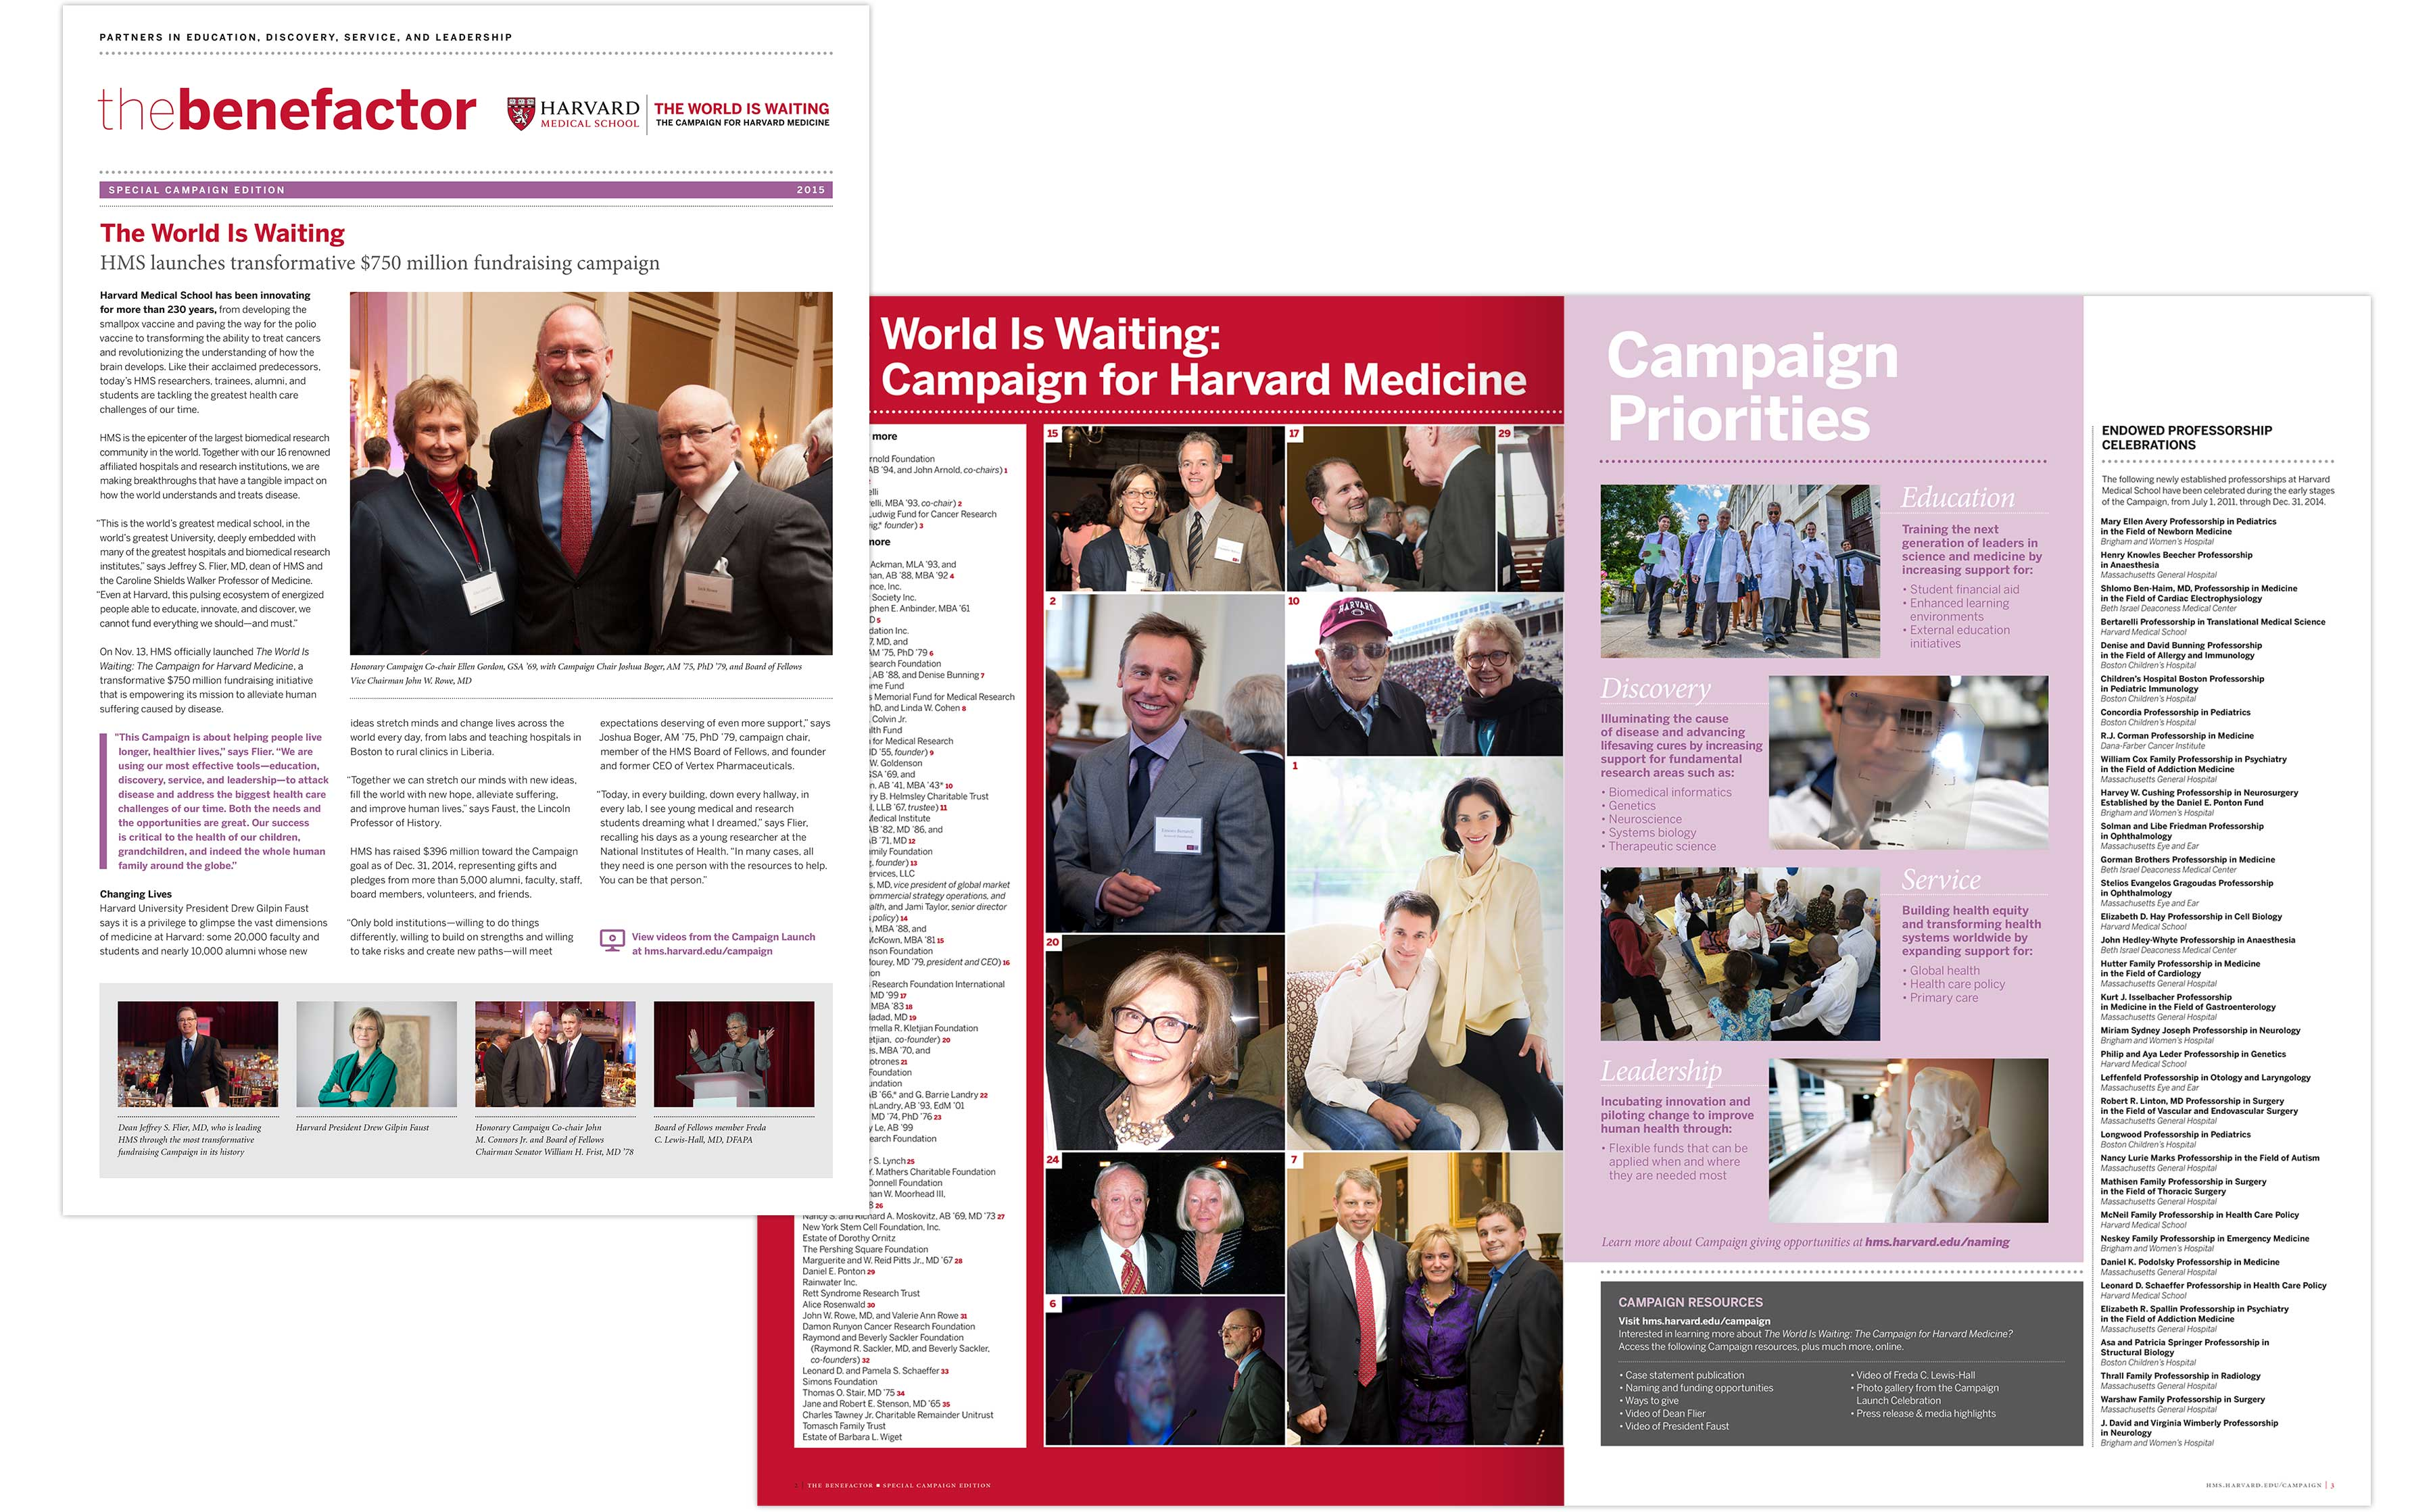 The Benefactor newsletter spread